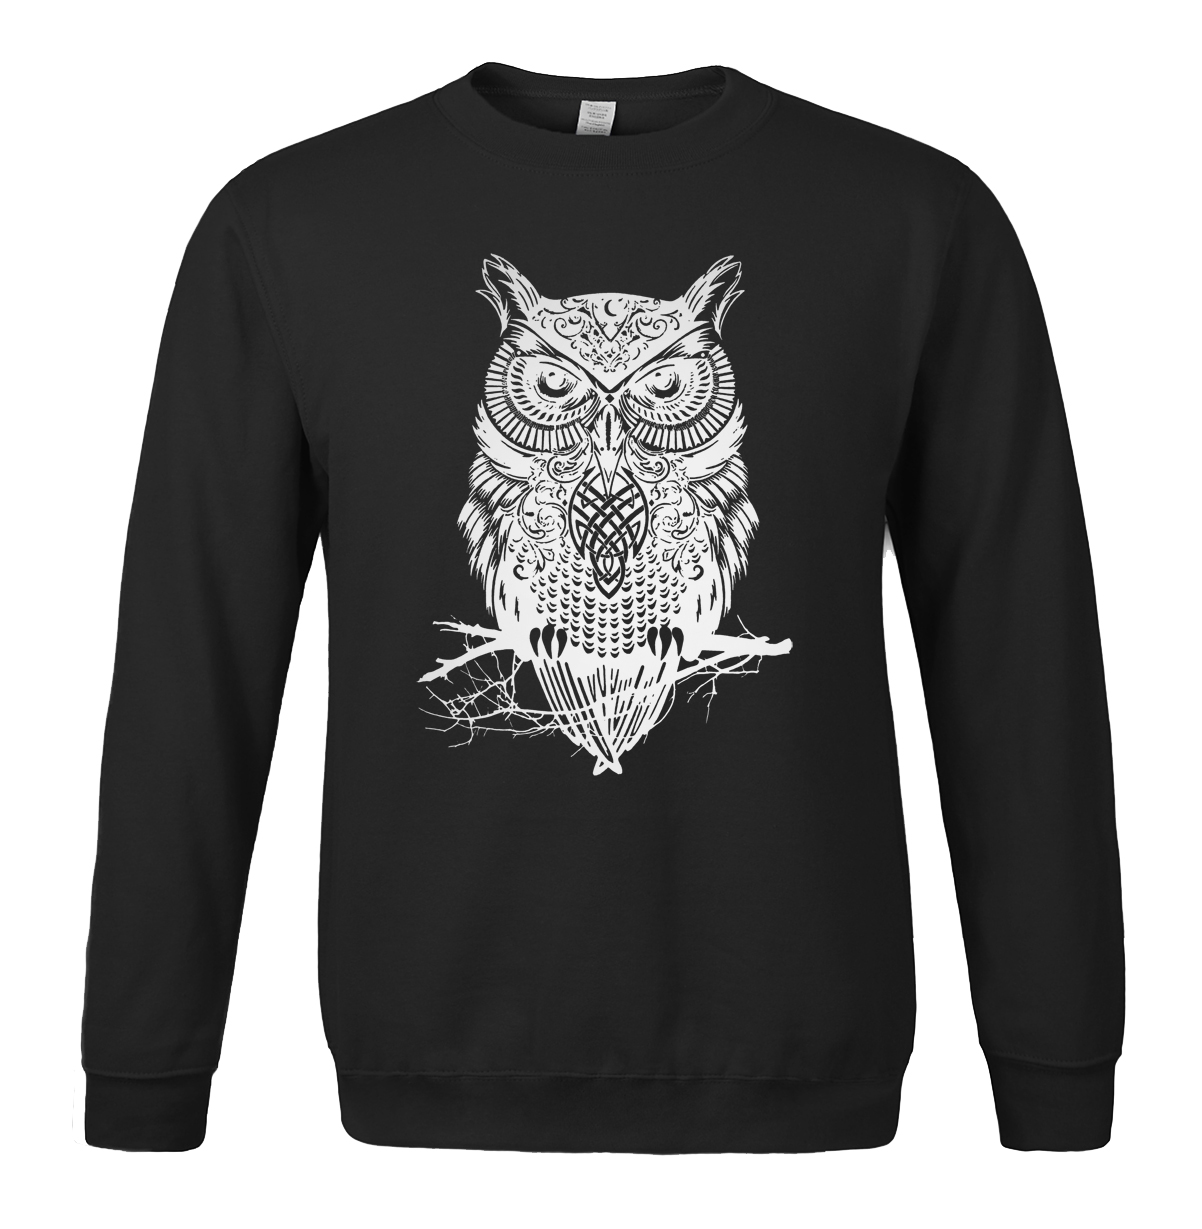 2019 spring winter hoodies sweatshirt cartoon animal Owl printed men's sportswear fleece hoody brand clothing tracksuits k-pop